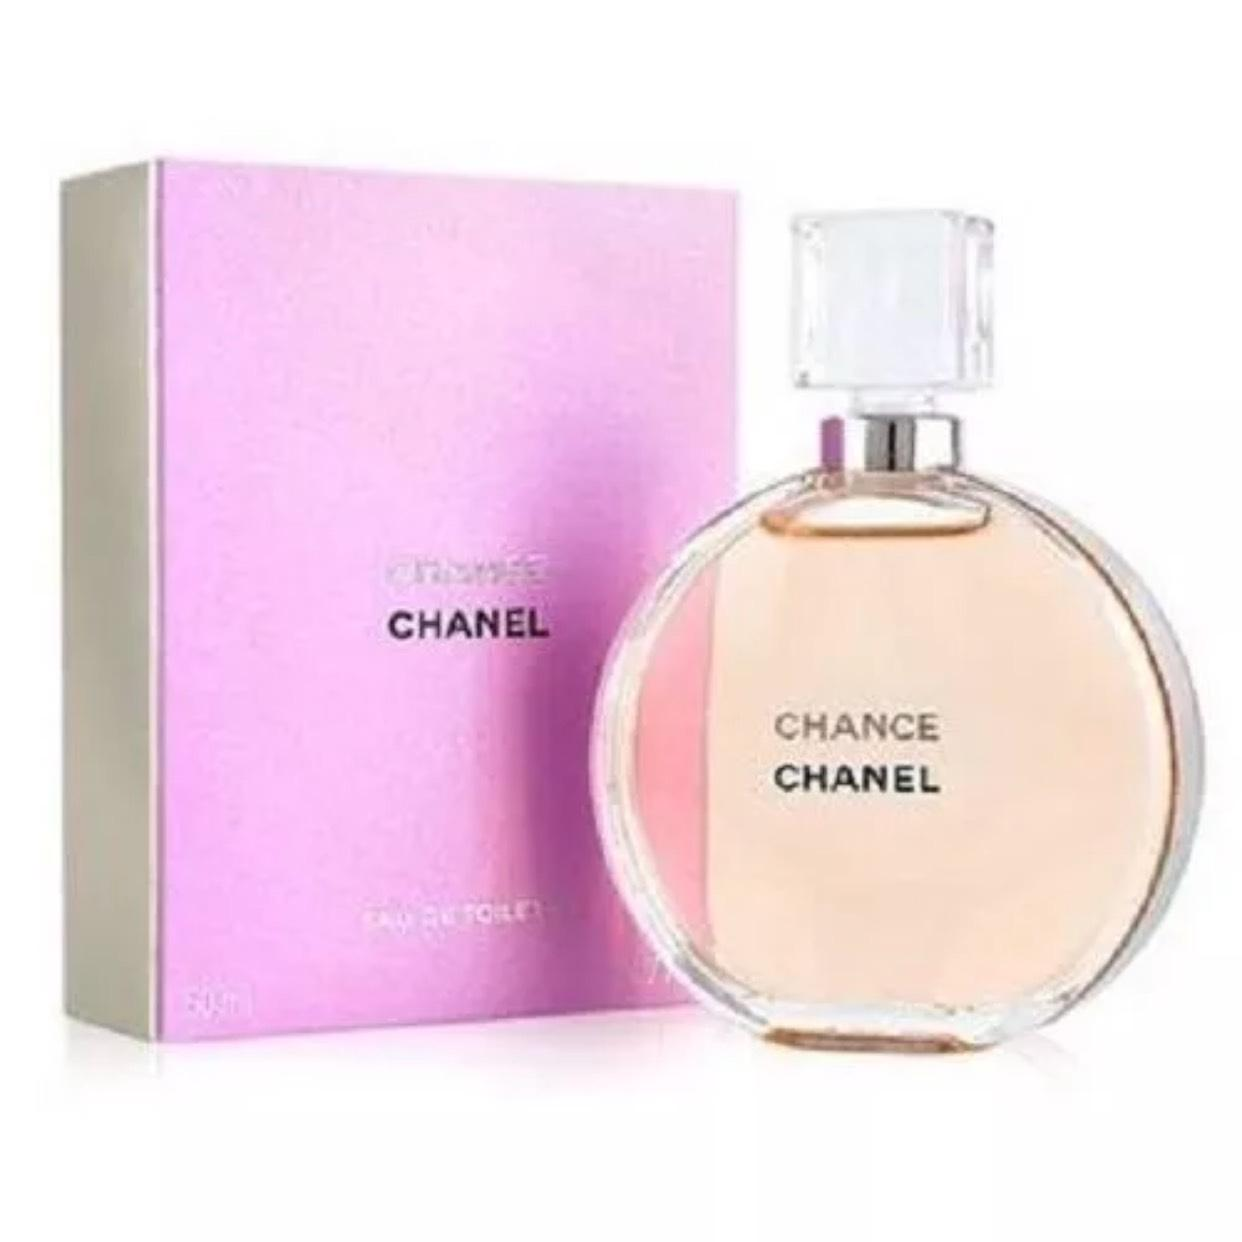 chanel set lotion plus eau de toilette fragrance tradesy